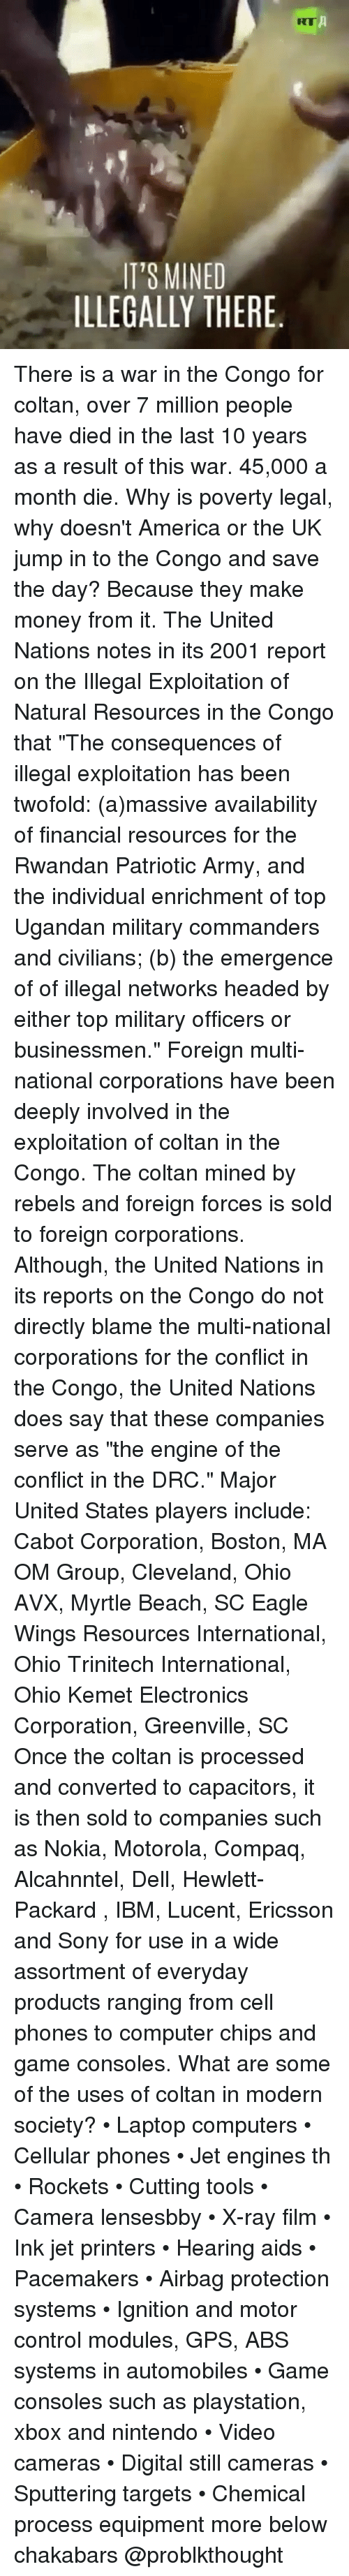 "ibm: KT  IT'S MINED  ILLEGALLY THERE. There is a war in the Congo for coltan, over 7 million people have died in the last 10 years as a result of this war. 45,000 a month die. Why is poverty legal, why doesn't America or the UK jump in to the Congo and save the day? Because they make money from it. The United Nations notes in its 2001 report on the Illegal Exploitation of Natural Resources in the Congo that ""The consequences of illegal exploitation has been twofold: (a)massive availability of financial resources for the Rwandan Patriotic Army, and the individual enrichment of top Ugandan military commanders and civilians; (b) the emergence of of illegal networks headed by either top military officers or businessmen."" Foreign multi-national corporations have been deeply involved in the exploitation of coltan in the Congo. The coltan mined by rebels and foreign forces is sold to foreign corporations. Although, the United Nations in its reports on the Congo do not directly blame the multi-national corporations for the conflict in the Congo, the United Nations does say that these companies serve as ""the engine of the conflict in the DRC."" Major United States players include: Cabot Corporation, Boston, MA OM Group, Cleveland, Ohio AVX, Myrtle Beach, SC Eagle Wings Resources International, Ohio Trinitech International, Ohio Kemet Electronics Corporation, Greenville, SC Once the coltan is processed and converted to capacitors, it is then sold to companies such as Nokia, Motorola, Compaq, Alcahnntel, Dell, Hewlett-Packard , IBM, Lucent, Ericsson and Sony for use in a wide assortment of everyday products ranging from cell phones to computer chips and game consoles. What are some of the uses of coltan in modern society? • Laptop computers • Cellular phones • Jet engines th • Rockets • Cutting tools • Camera lensesbby • X-ray film • Ink jet printers • Hearing aids • Pacemakers • Airbag protection systems • Ignition and motor control modules, GPS, ABS systems in automobiles • Game consoles such as playstation, xbox and nintendo • Video cameras • Digital still cameras • Sputtering targets • Chemical process equipment more below chakabars @problkthought"